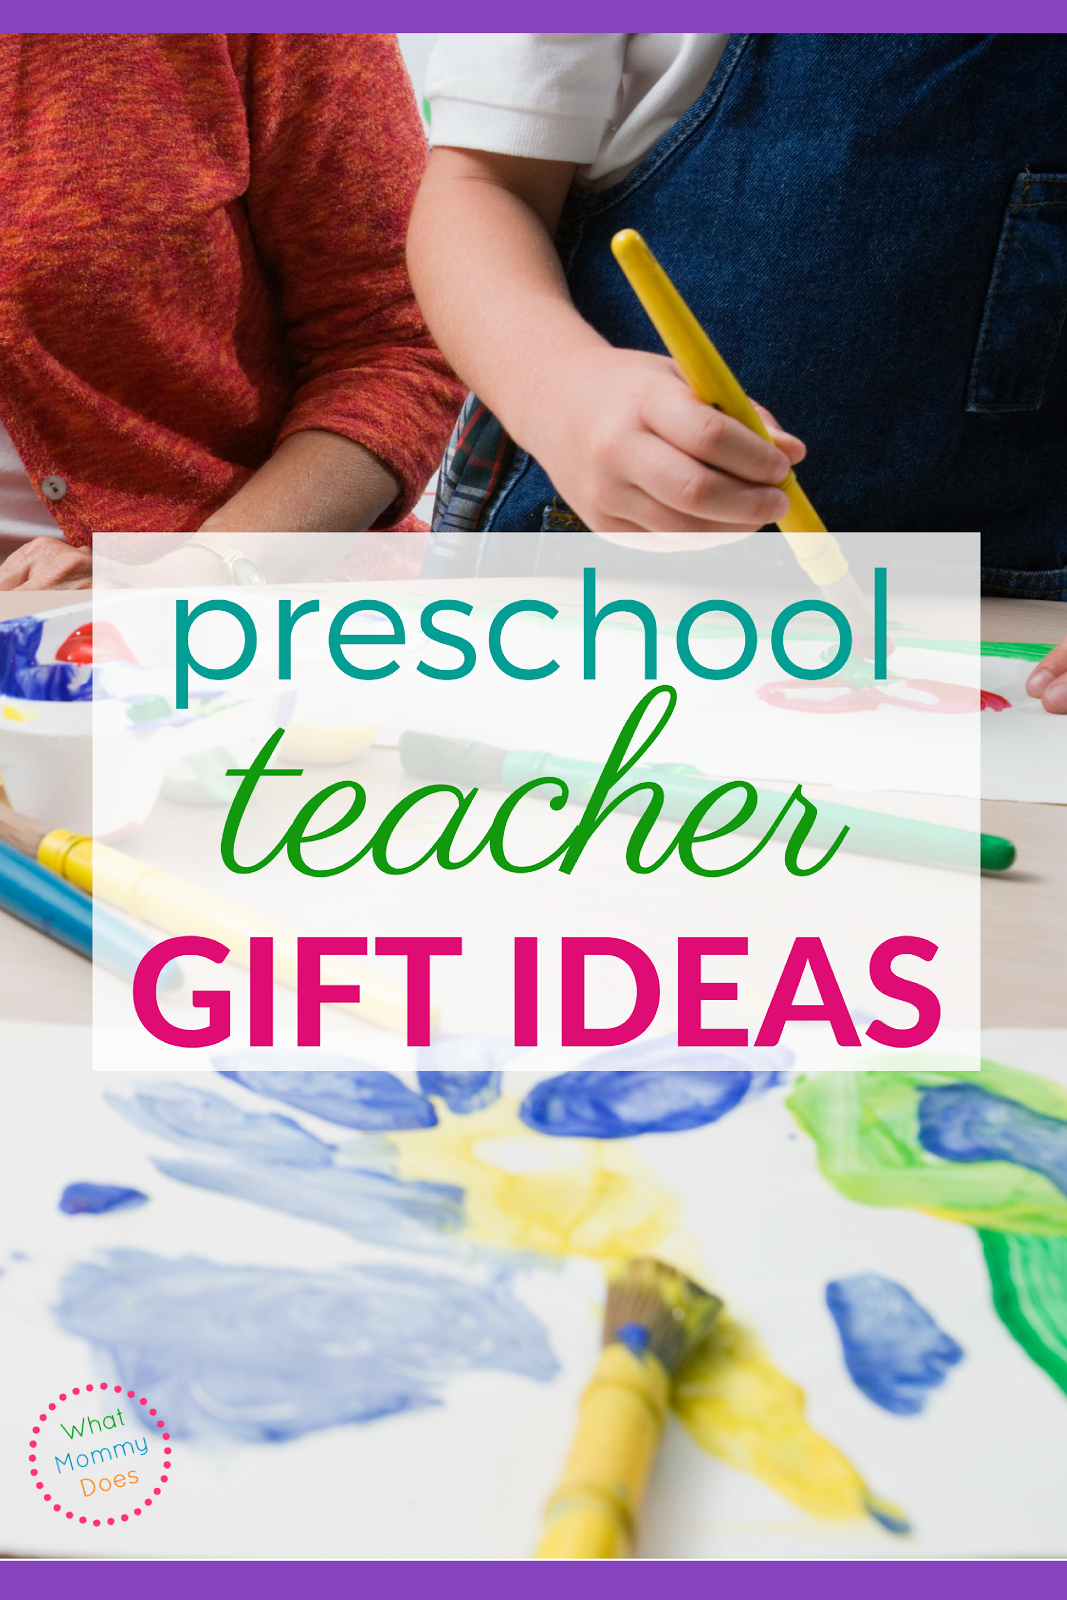 Lots of great preschool teacher gift ideas here! Some are DIY and others can be bought if you don't have the time. A gift is a great way to say THANK YOU to your child's teachers at the end of the year.